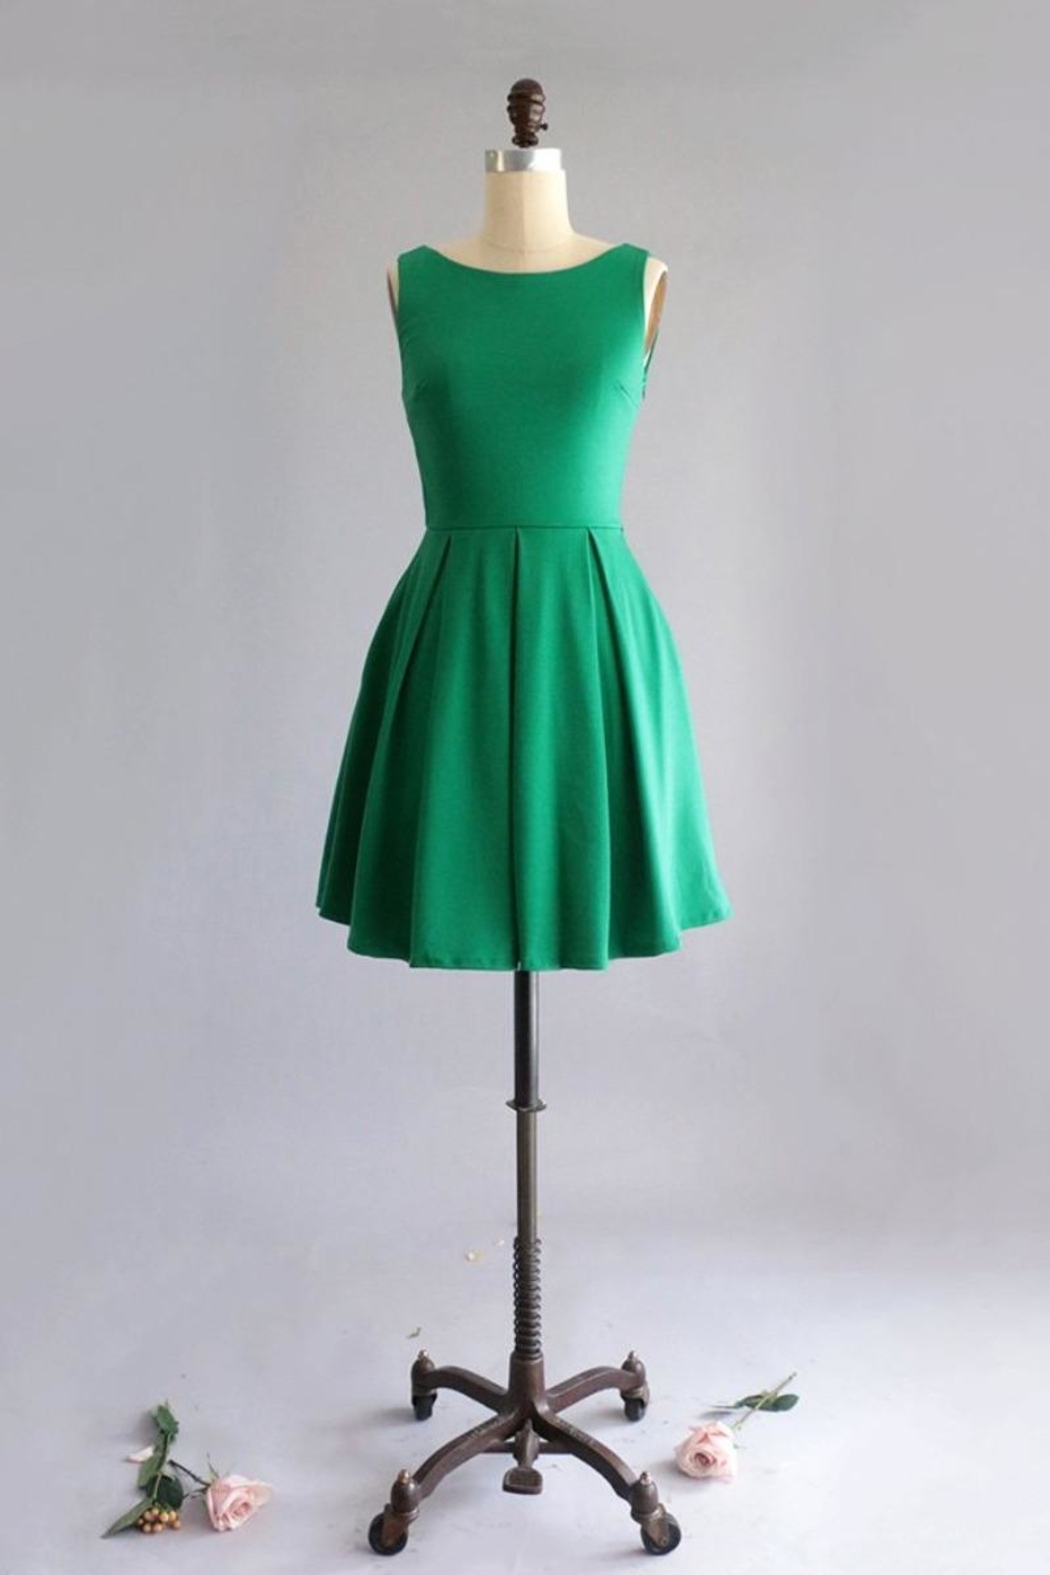 Apricity Bow-Tique Dress Green from New York by Pollyanna and Dot ... 113fa9081